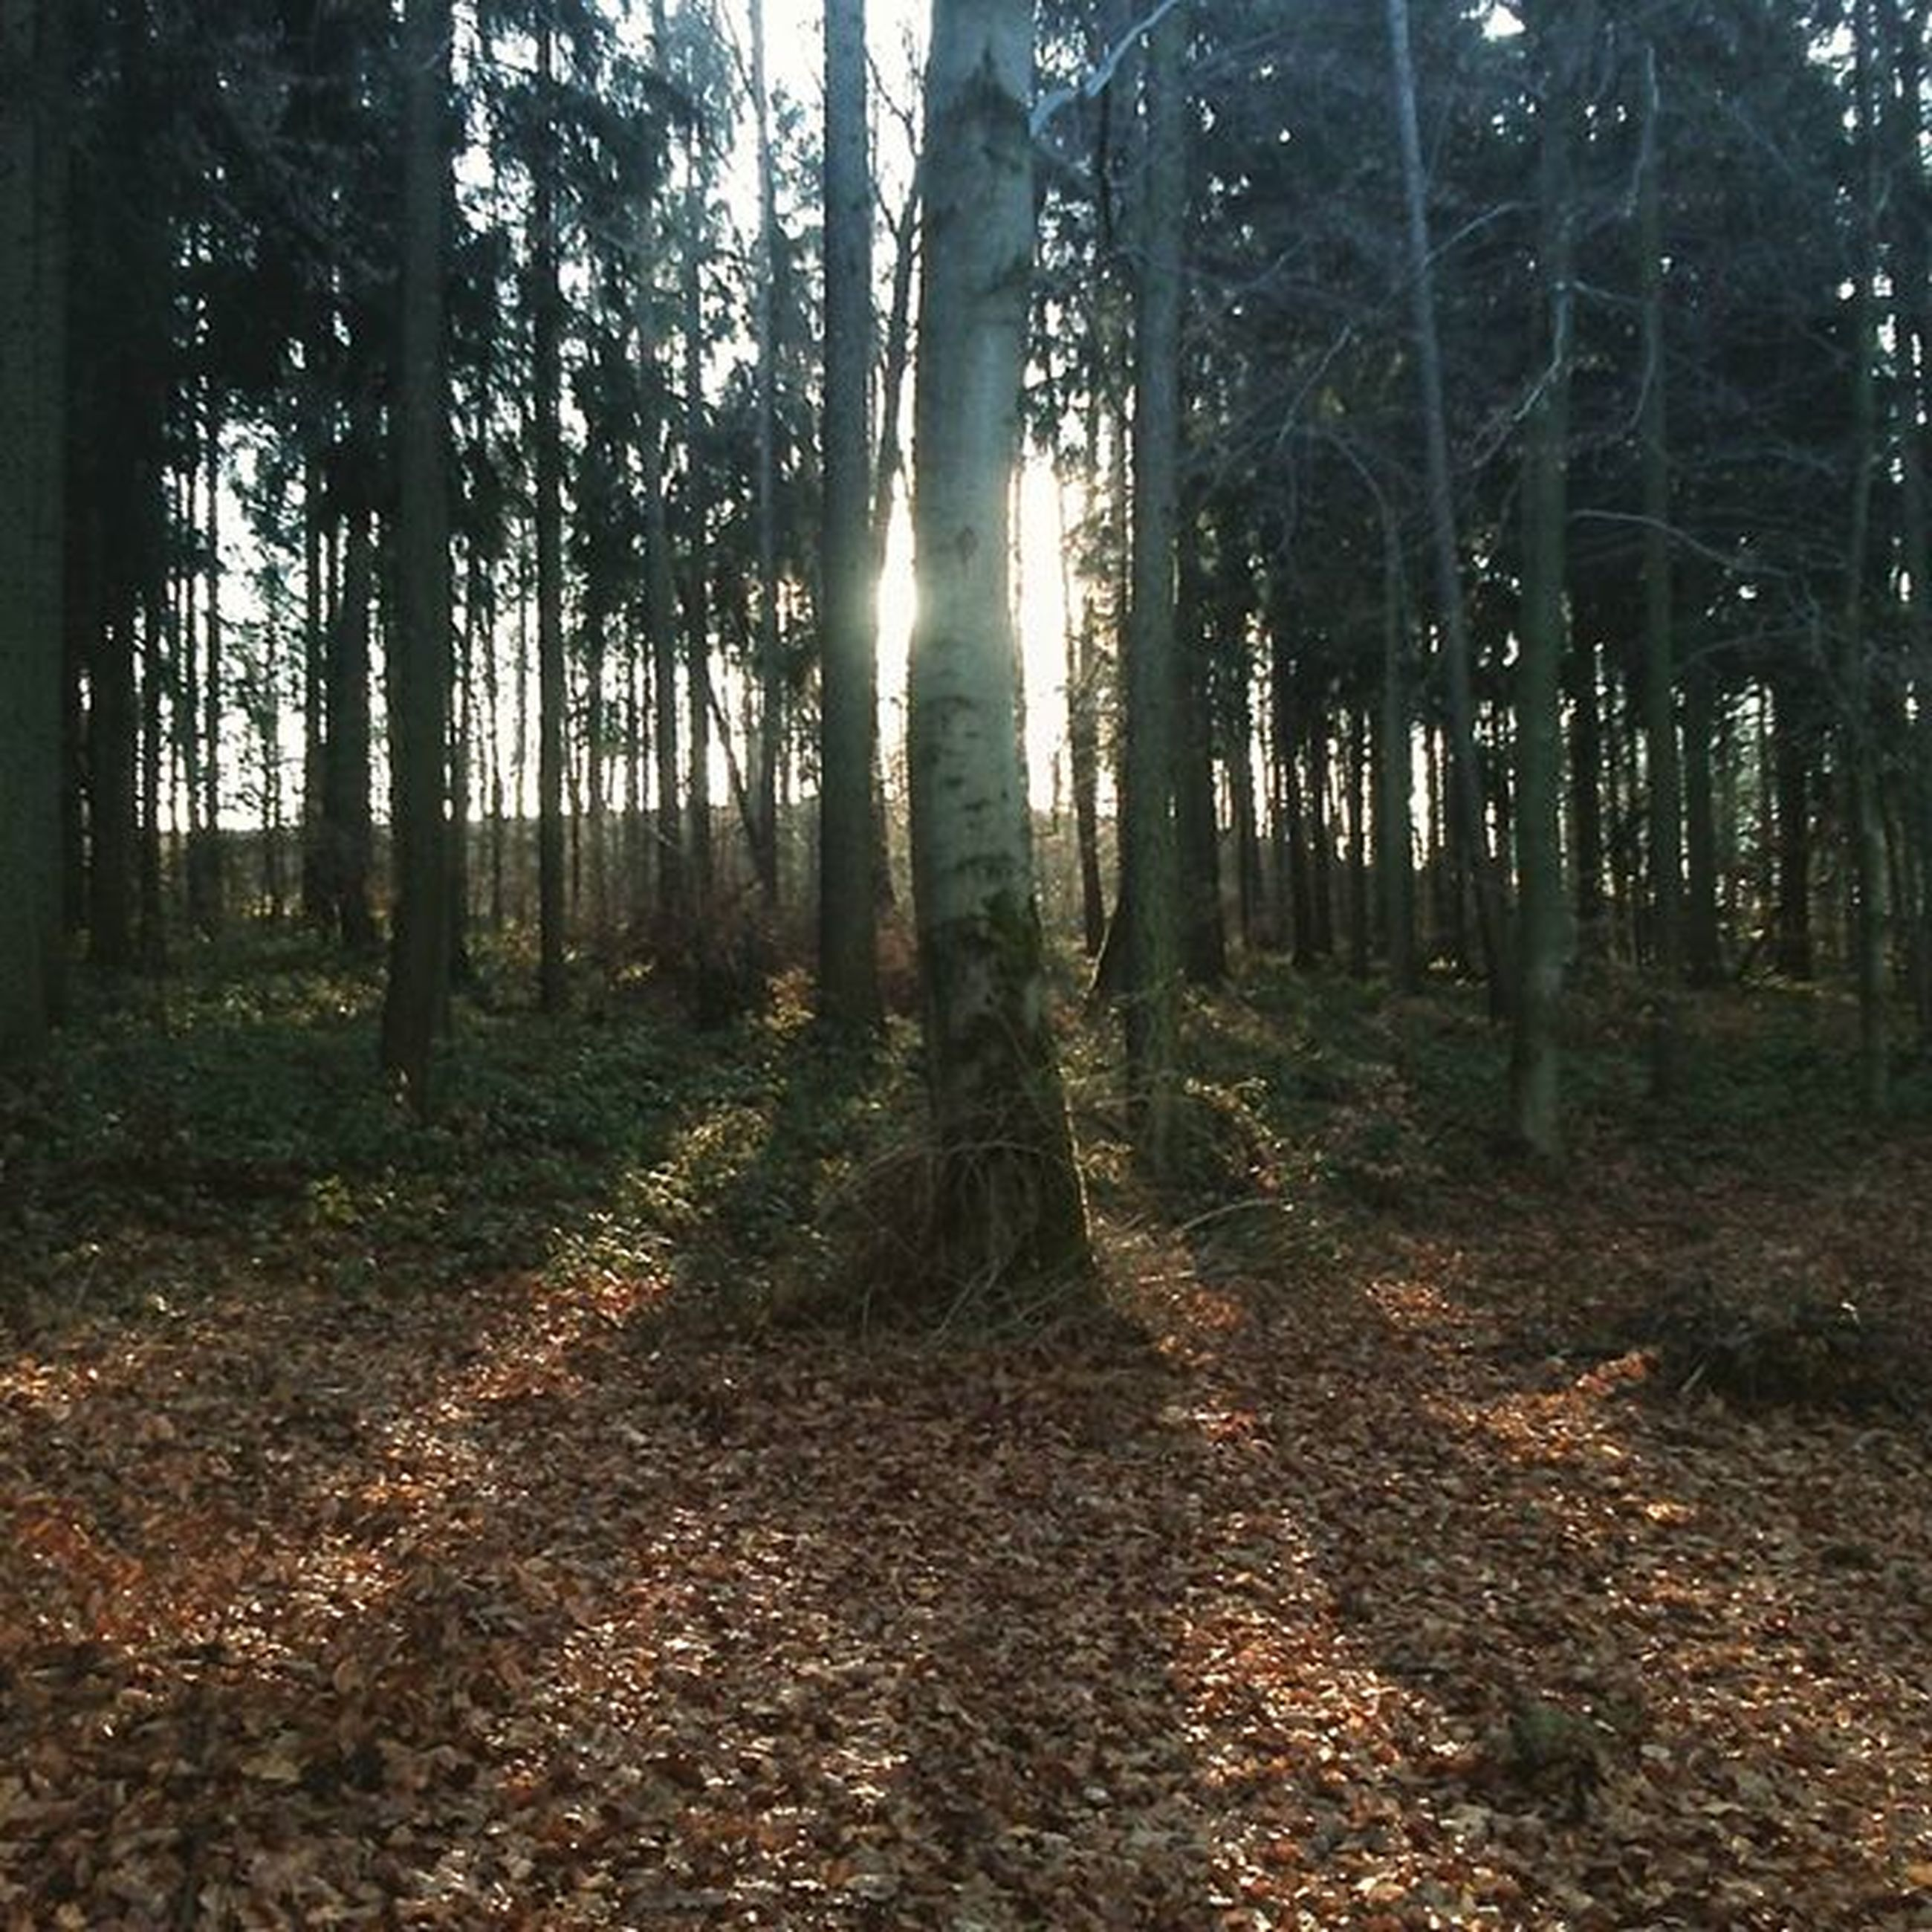 tree, forest, tranquility, woodland, tree trunk, tranquil scene, sunbeam, nature, sunlight, sun, scenics, landscape, beauty in nature, growth, non-urban scene, lens flare, back lit, leaf, day, outdoors